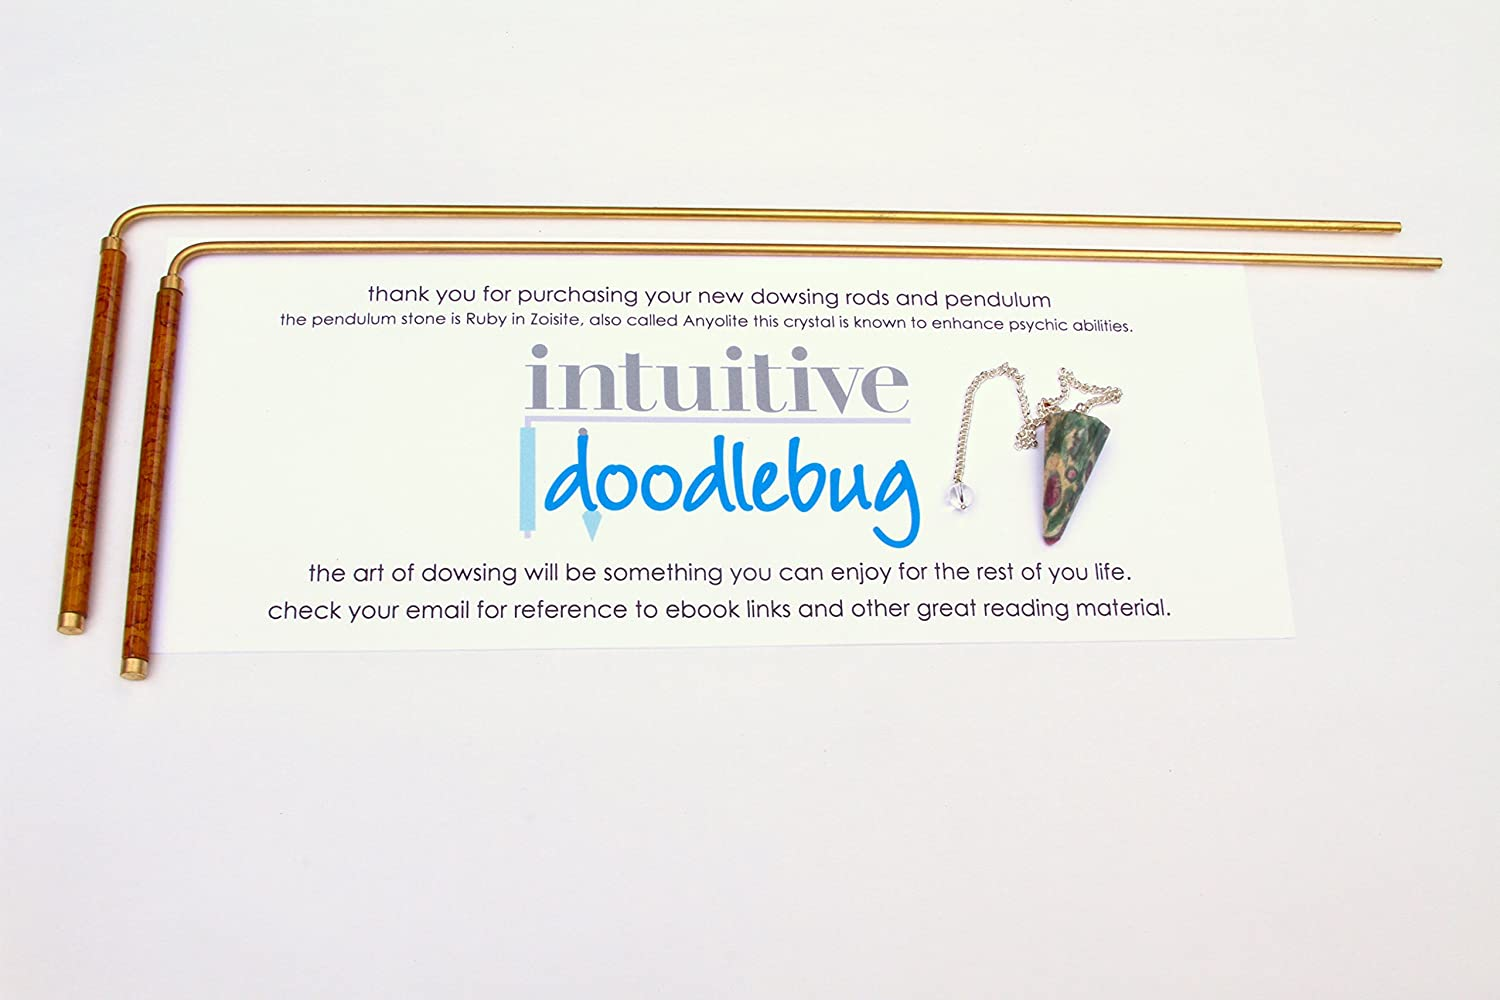 FPK products Intuitive Doodlebug Dowsing Rod Set includes 2 Divining Rods with Enamel Coated Copper Handles Ruby Zoisite Pendulum known to Enhance Psychic Abilities both great tools to Explore the Art of Dowsing